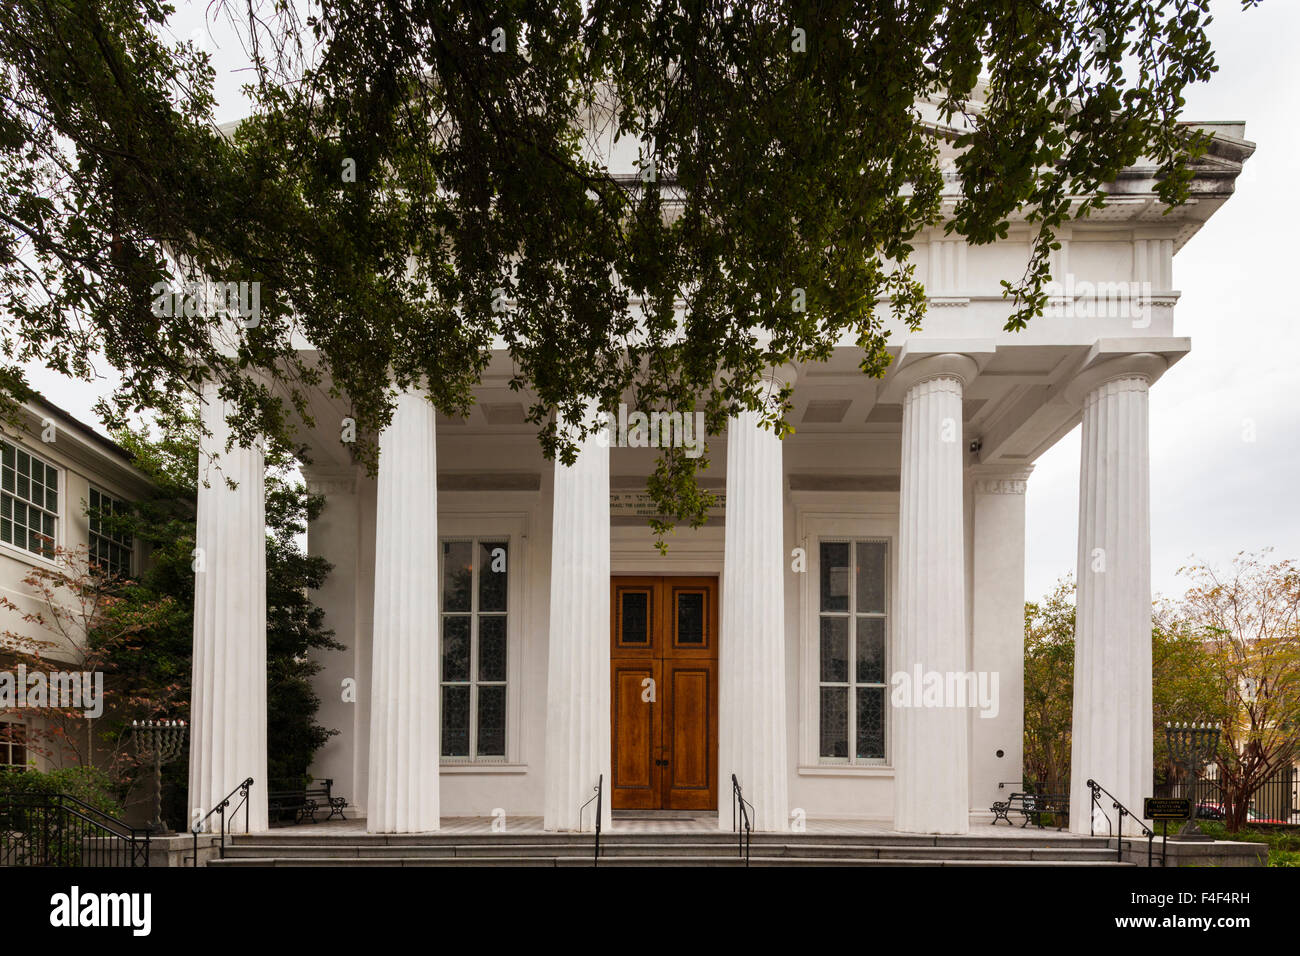 South Carolina, Charleston, Kahal Kadosh Beth Elohim Synagogue, oldest continuously used synagogue in the exterior - Stock Image